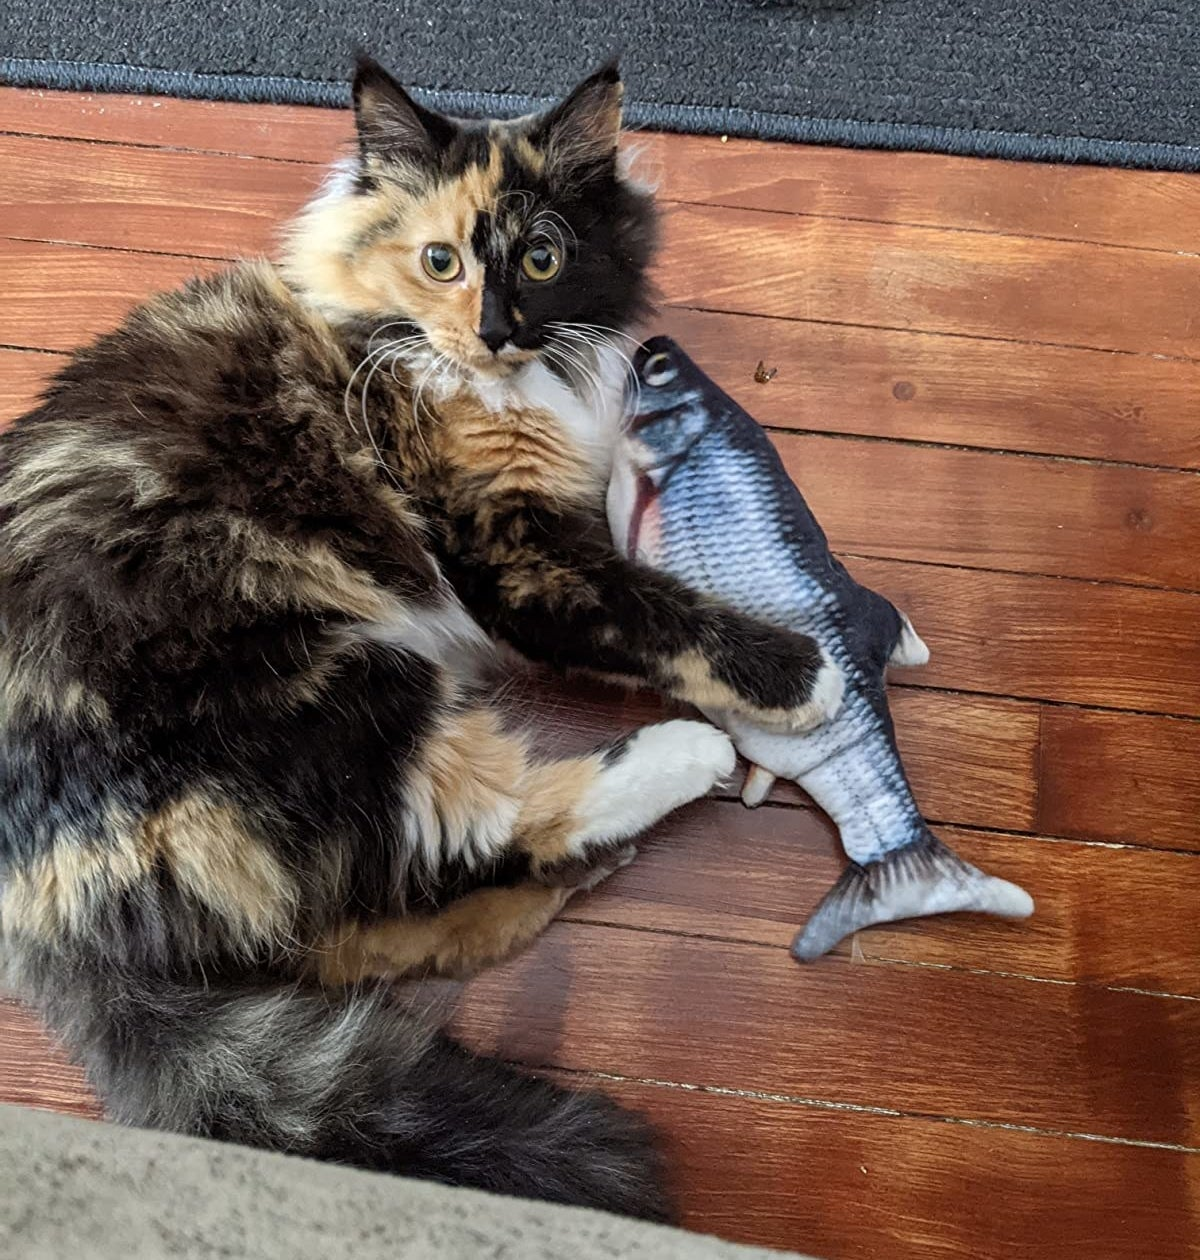 a reviewer's cat playing with the fish